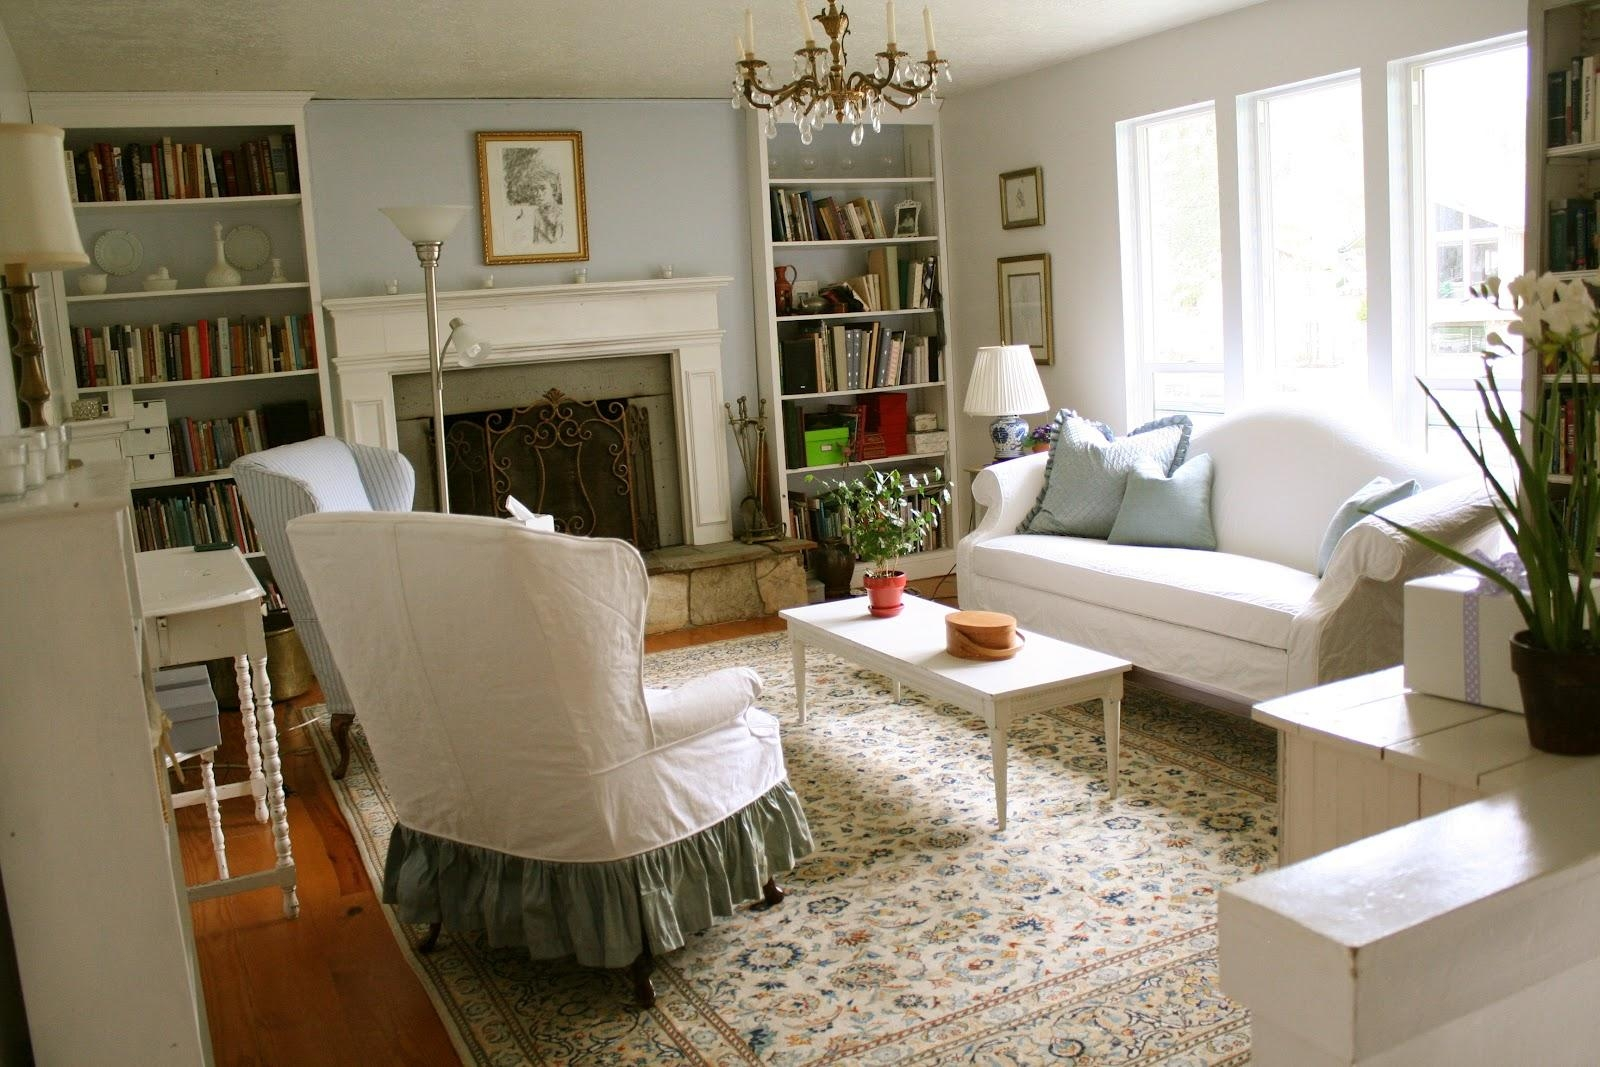 Custom Slipcoversshelley: White Camel Back Couch With Regard To Camel Back Sofa Slipcovers (Image 11 of 20)